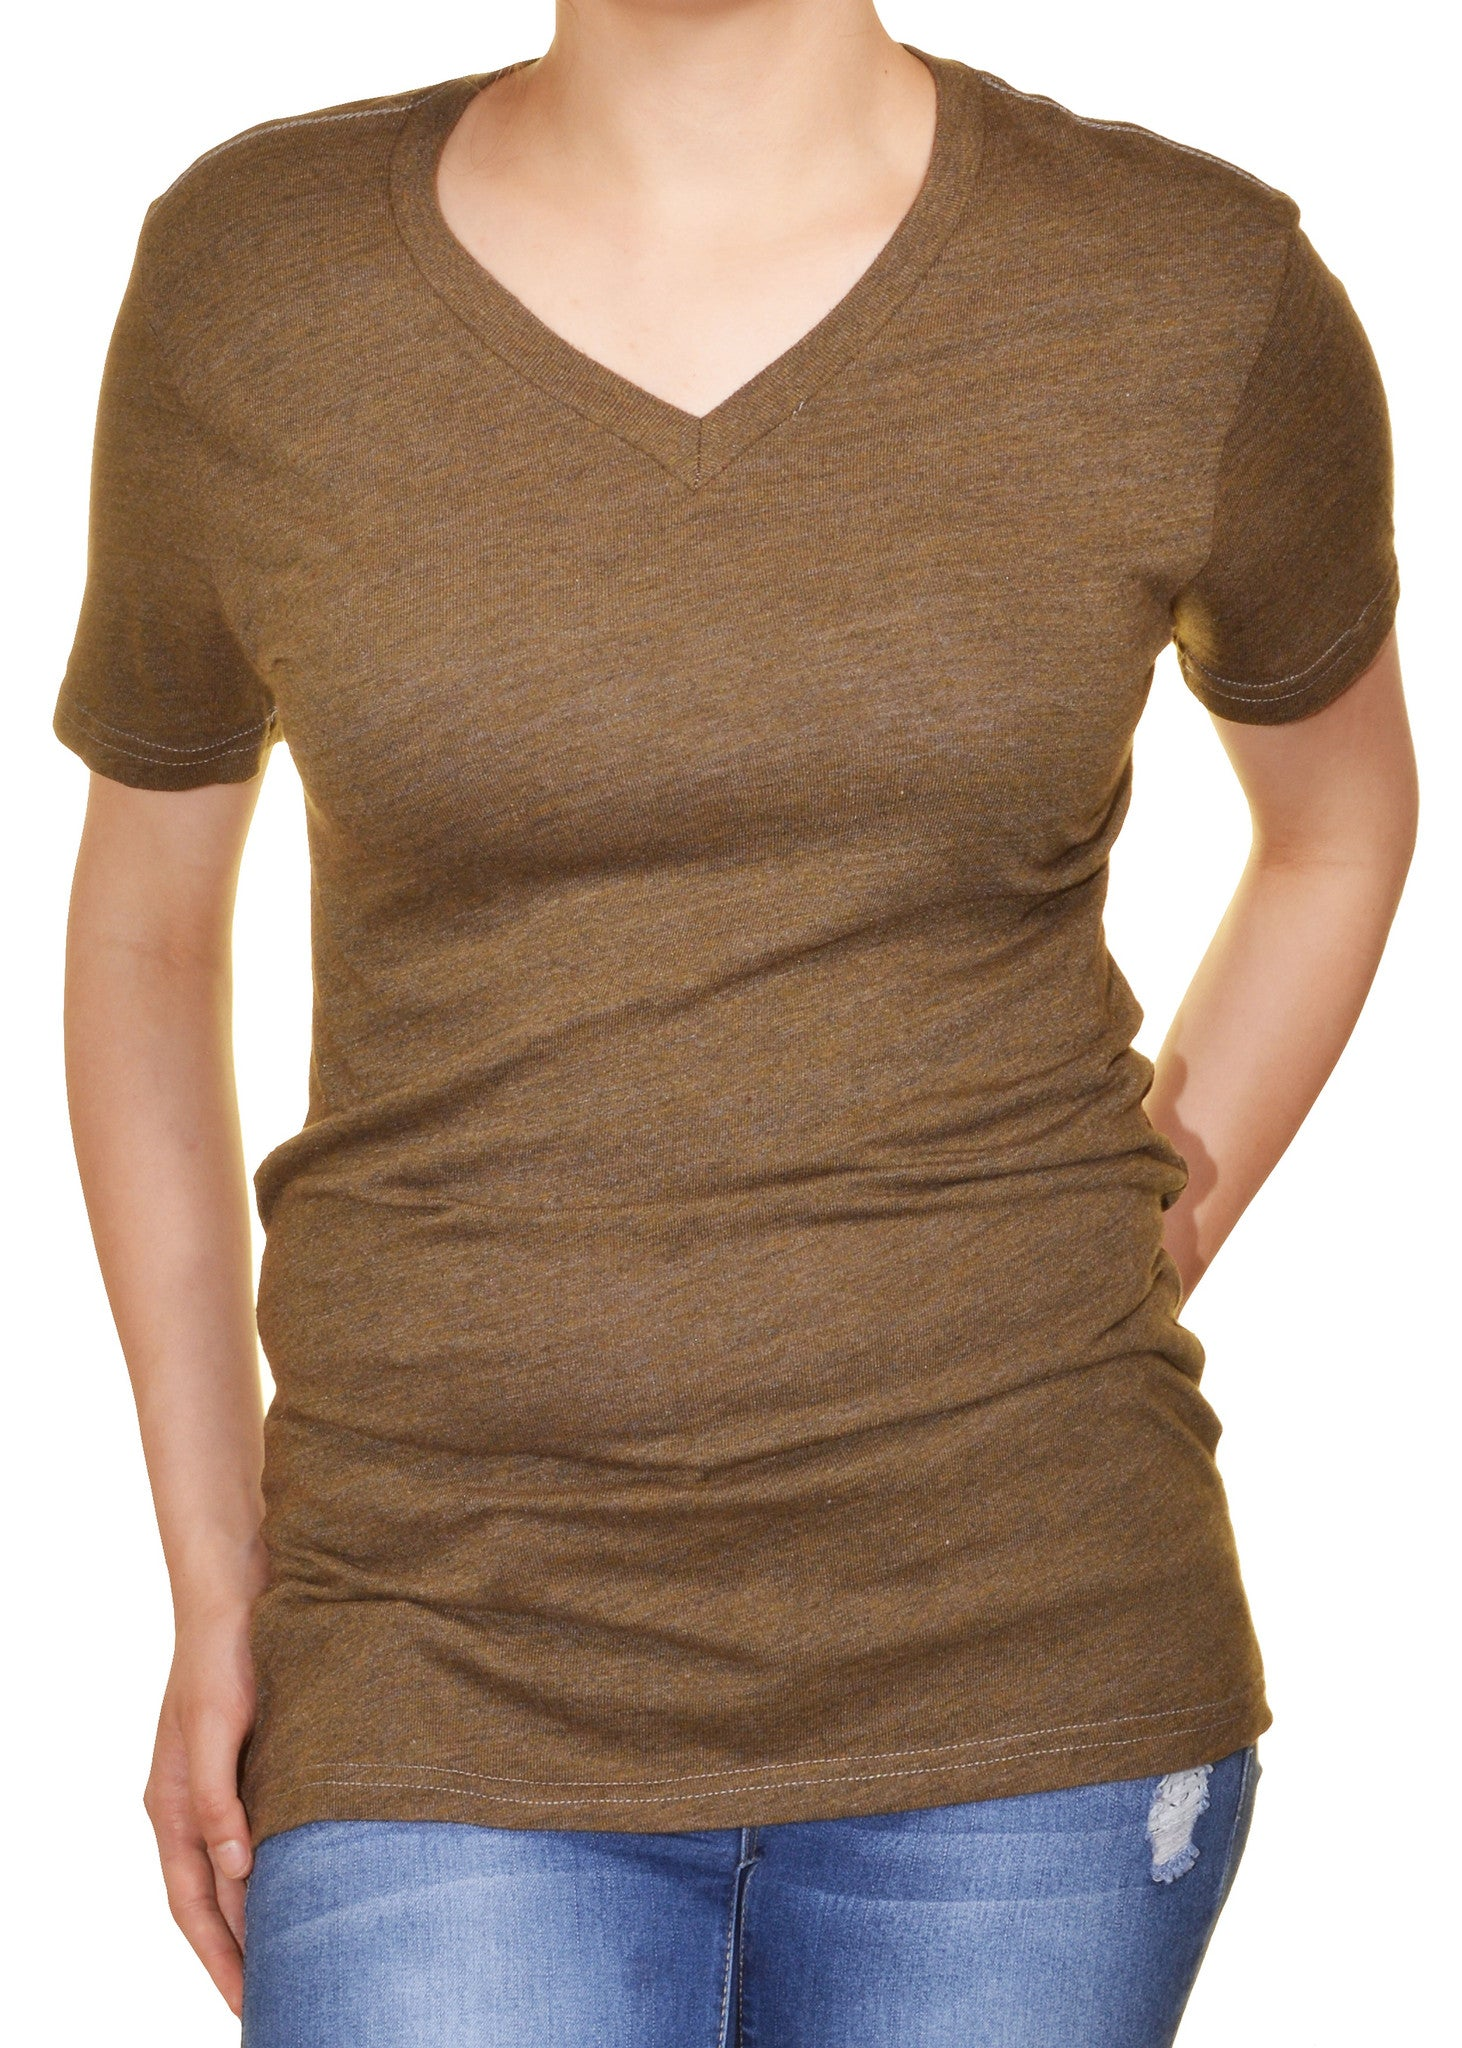 Gorilla Buffet Womens Long V-Neck Tshirt | Brown